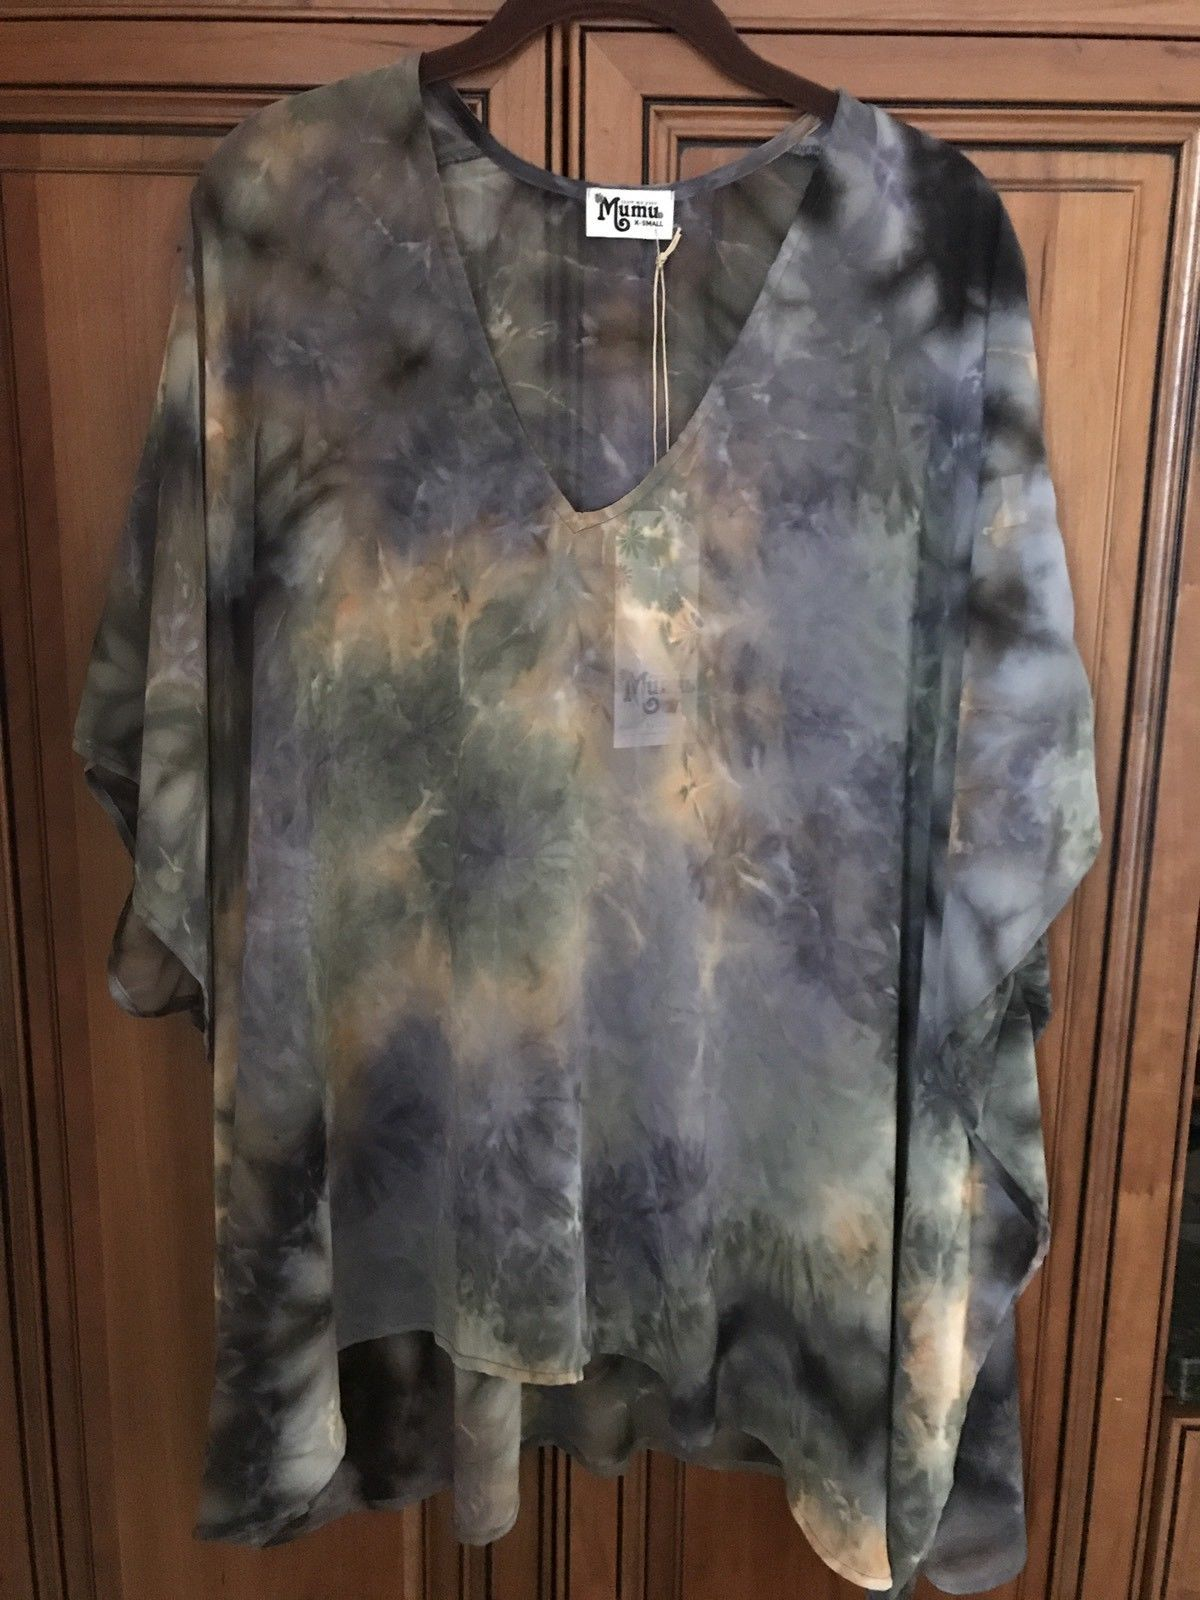 $  193.50 (24 Bids)End Date: Jul-28 06:48Bid now  |  Add to watch listBuy this on eBay (Category:Women's Clothing)...